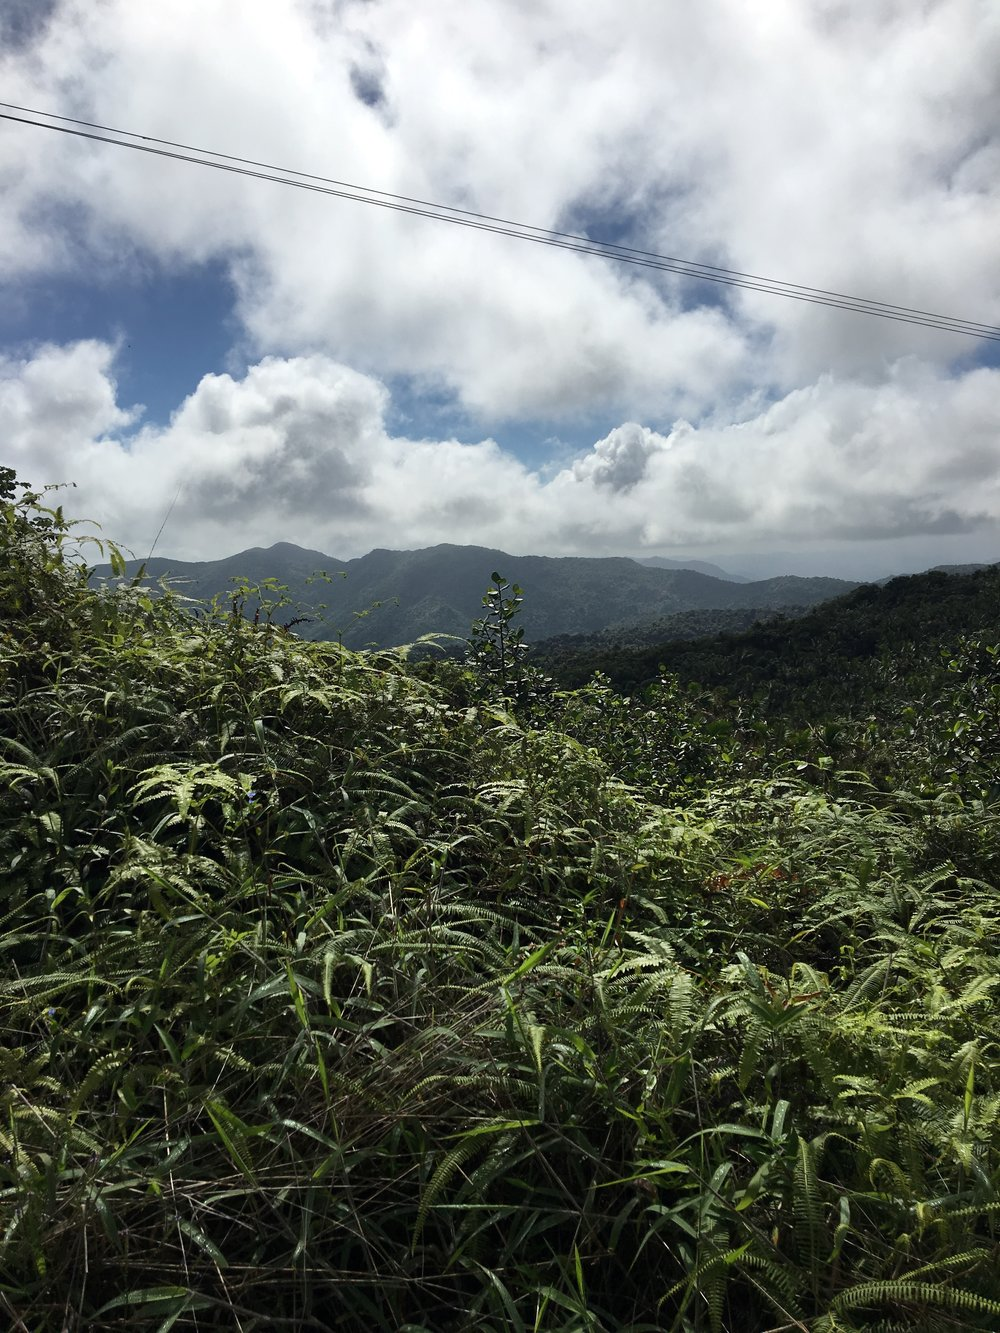 View of the Toro Negro mountain range, where the majority of the sharp-shinned hawk nests were located.